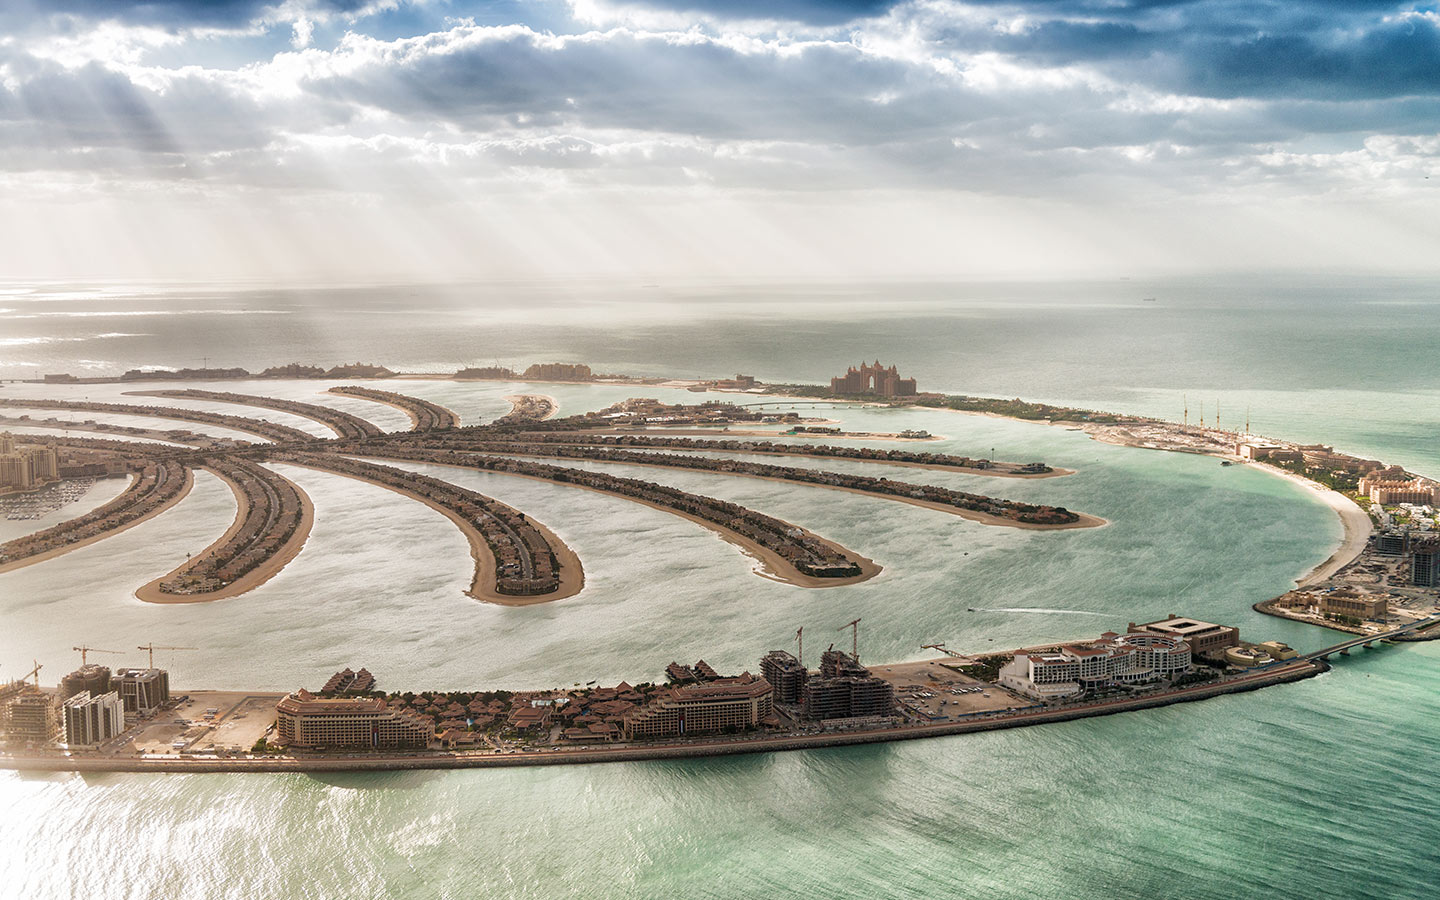 The Palm Jumeirah in Dubai known for its waterfront properties